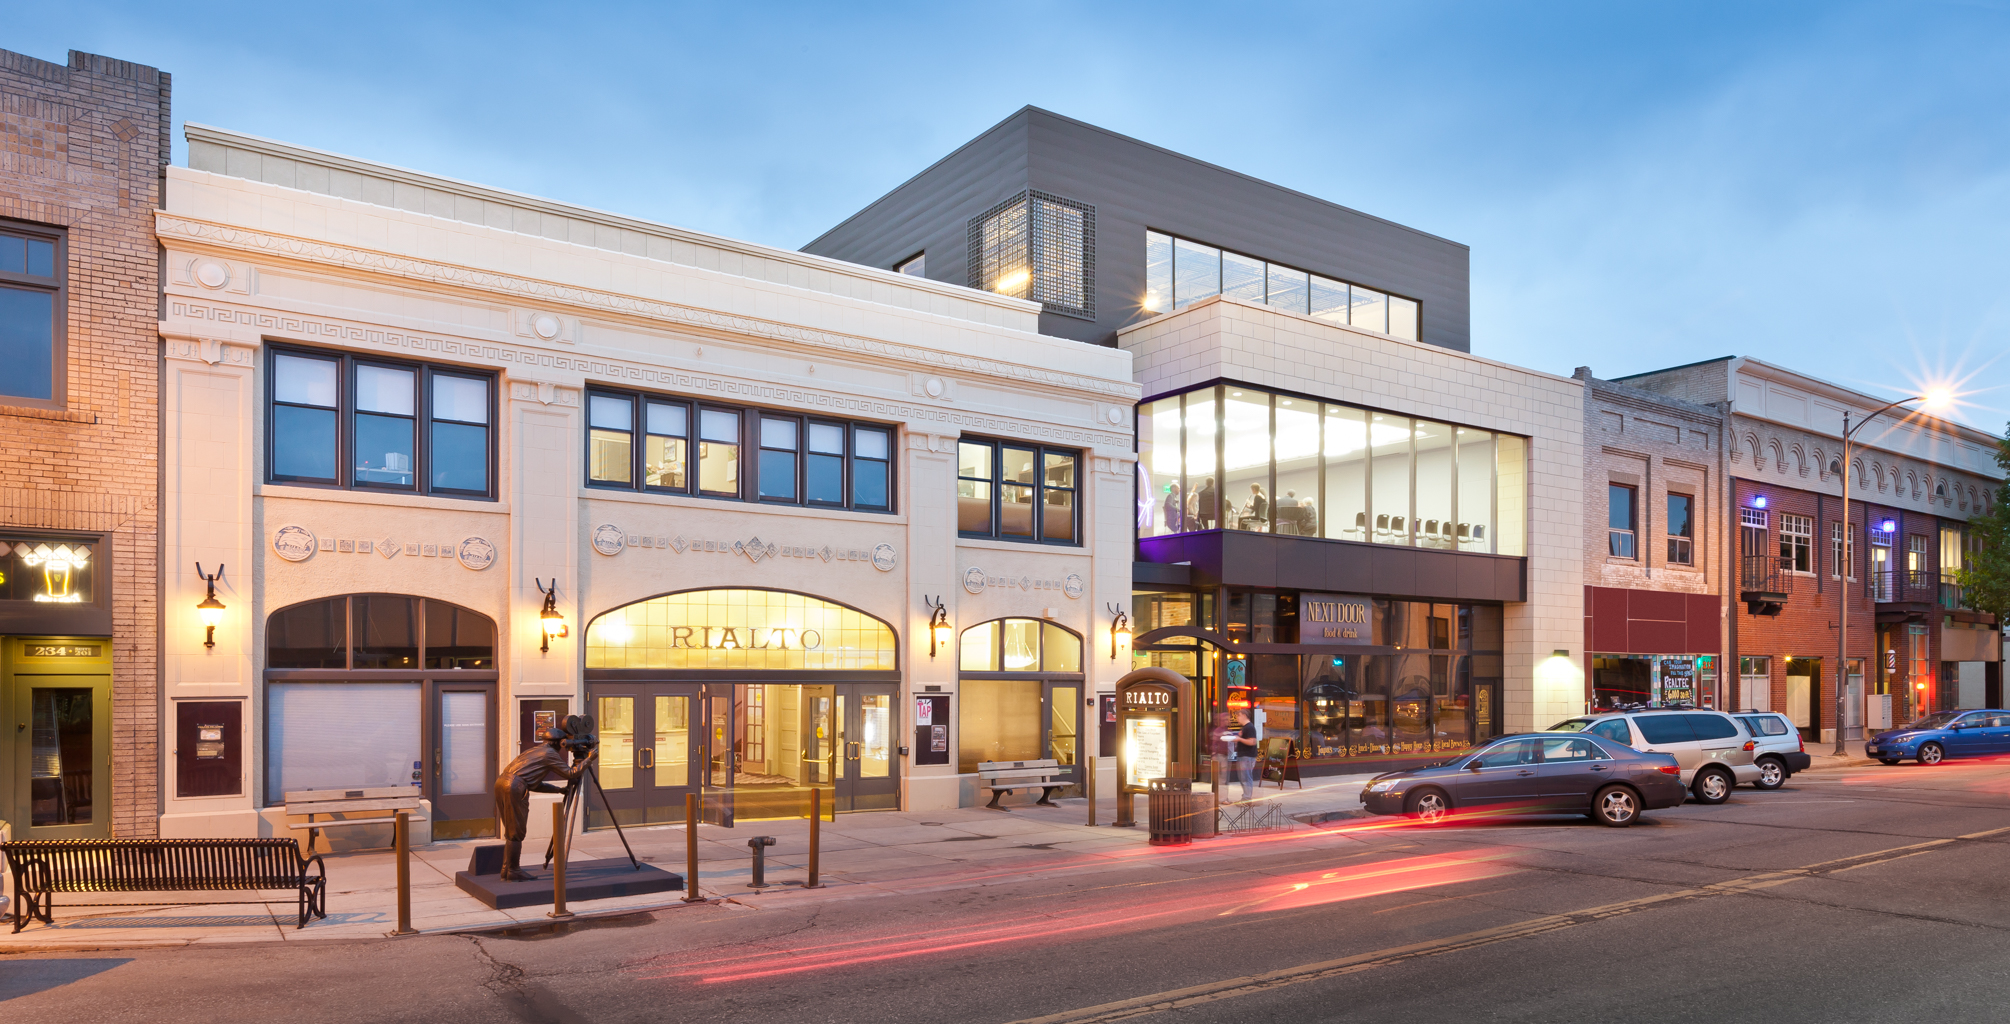 RB+B Architects' Rialto Theater renovation at dusk in downtown Loveland, CO